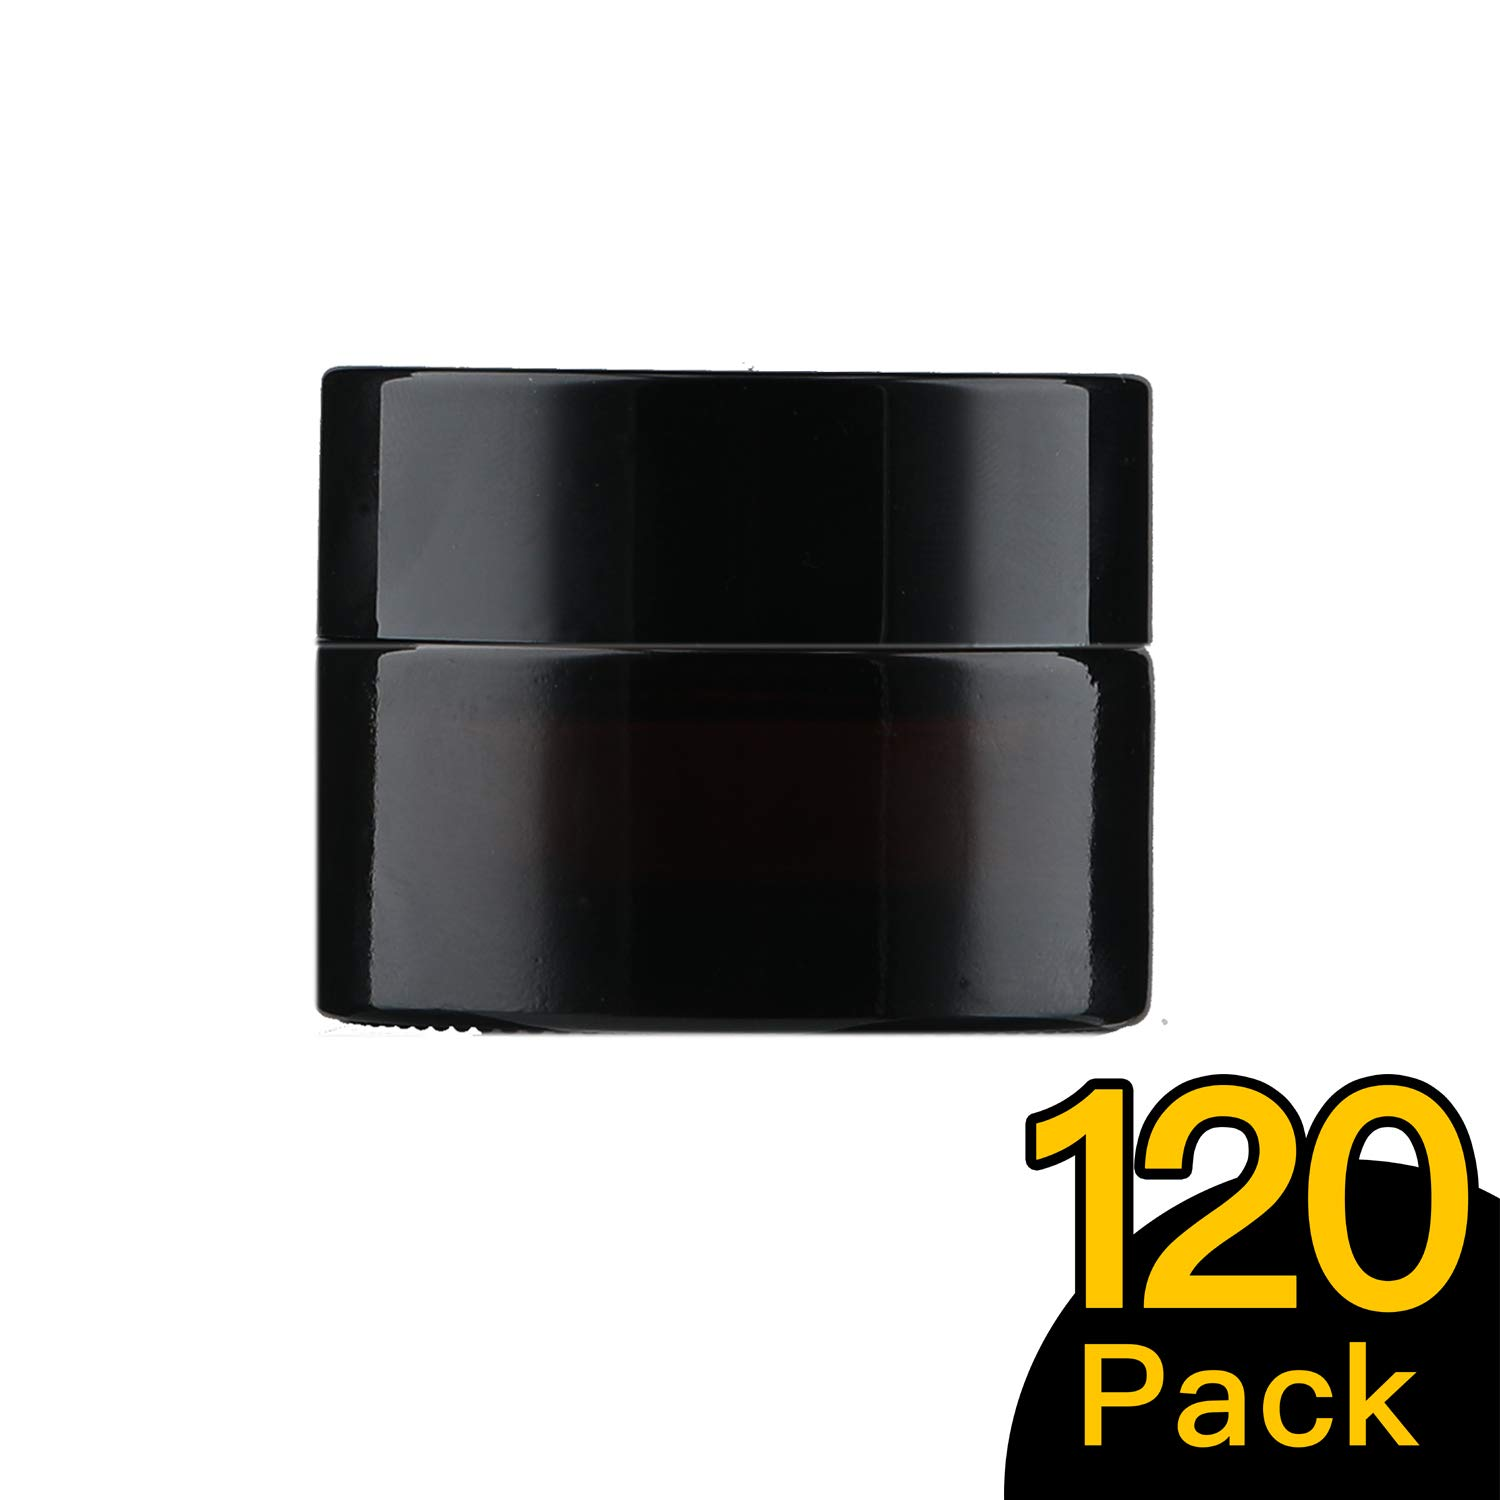 15ml/0.5 oz, 120 Pack Snow Diamond Empty Amber Round Glass Jars, with White Inner Liners and black Lids, High End Glass Containers for Salve Cream, Premium Vials (15ml/0.5 oz, 120 Pack)